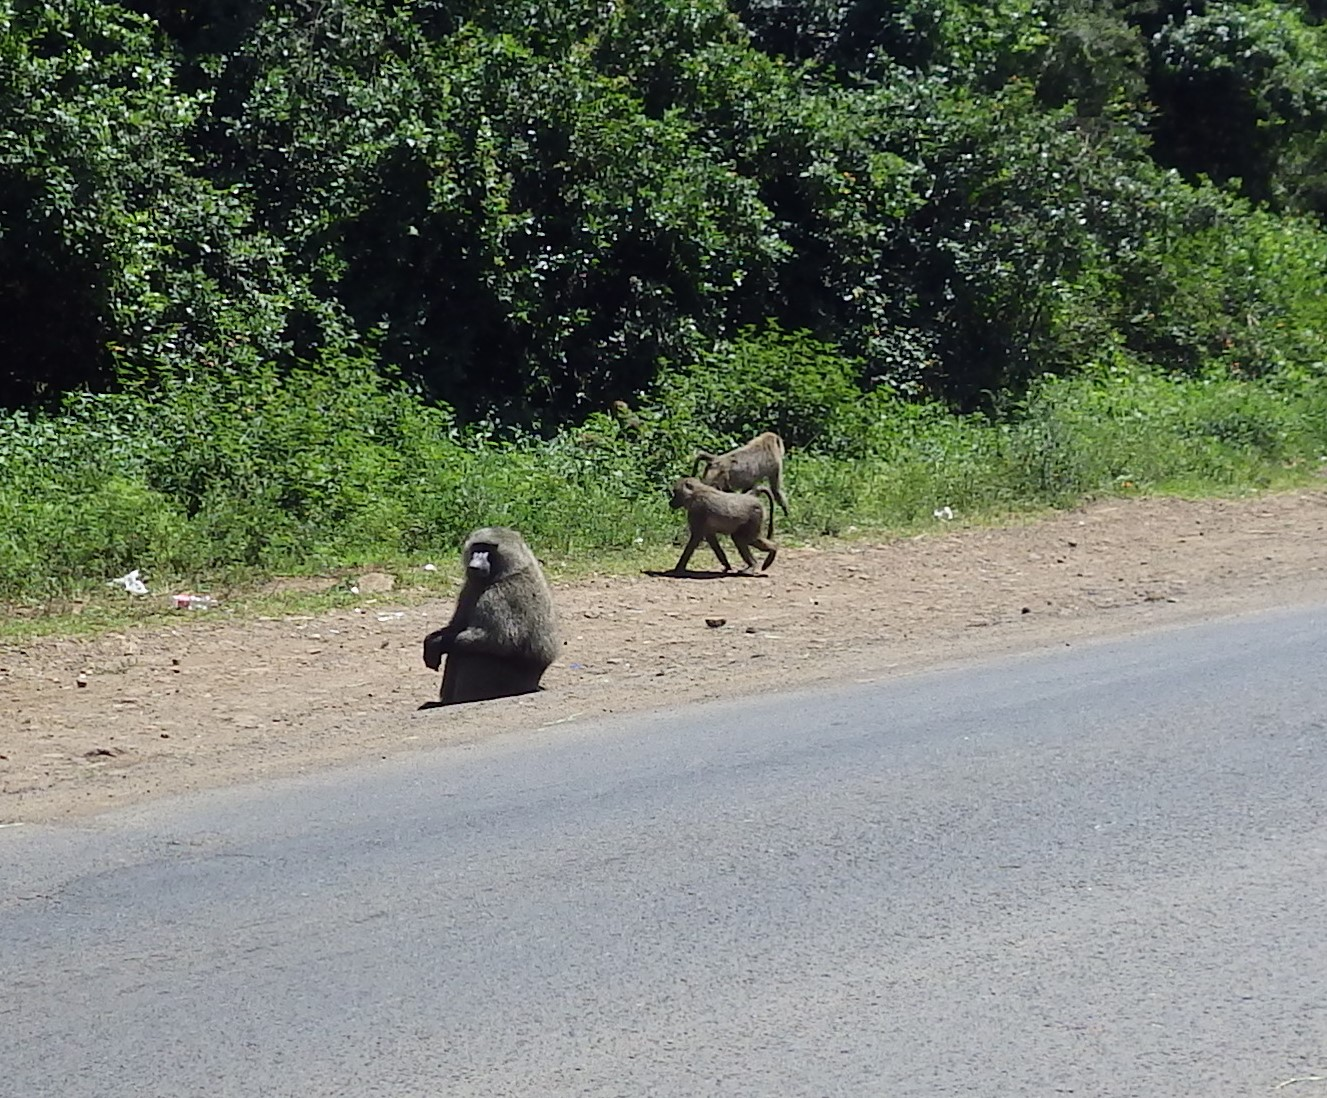 As I mentioned, I came across a troop of baboons on the way to lunch. When I'm out walking, I'm carrying my work camera. It's nearly indestructible and takes pretty competent pictures.